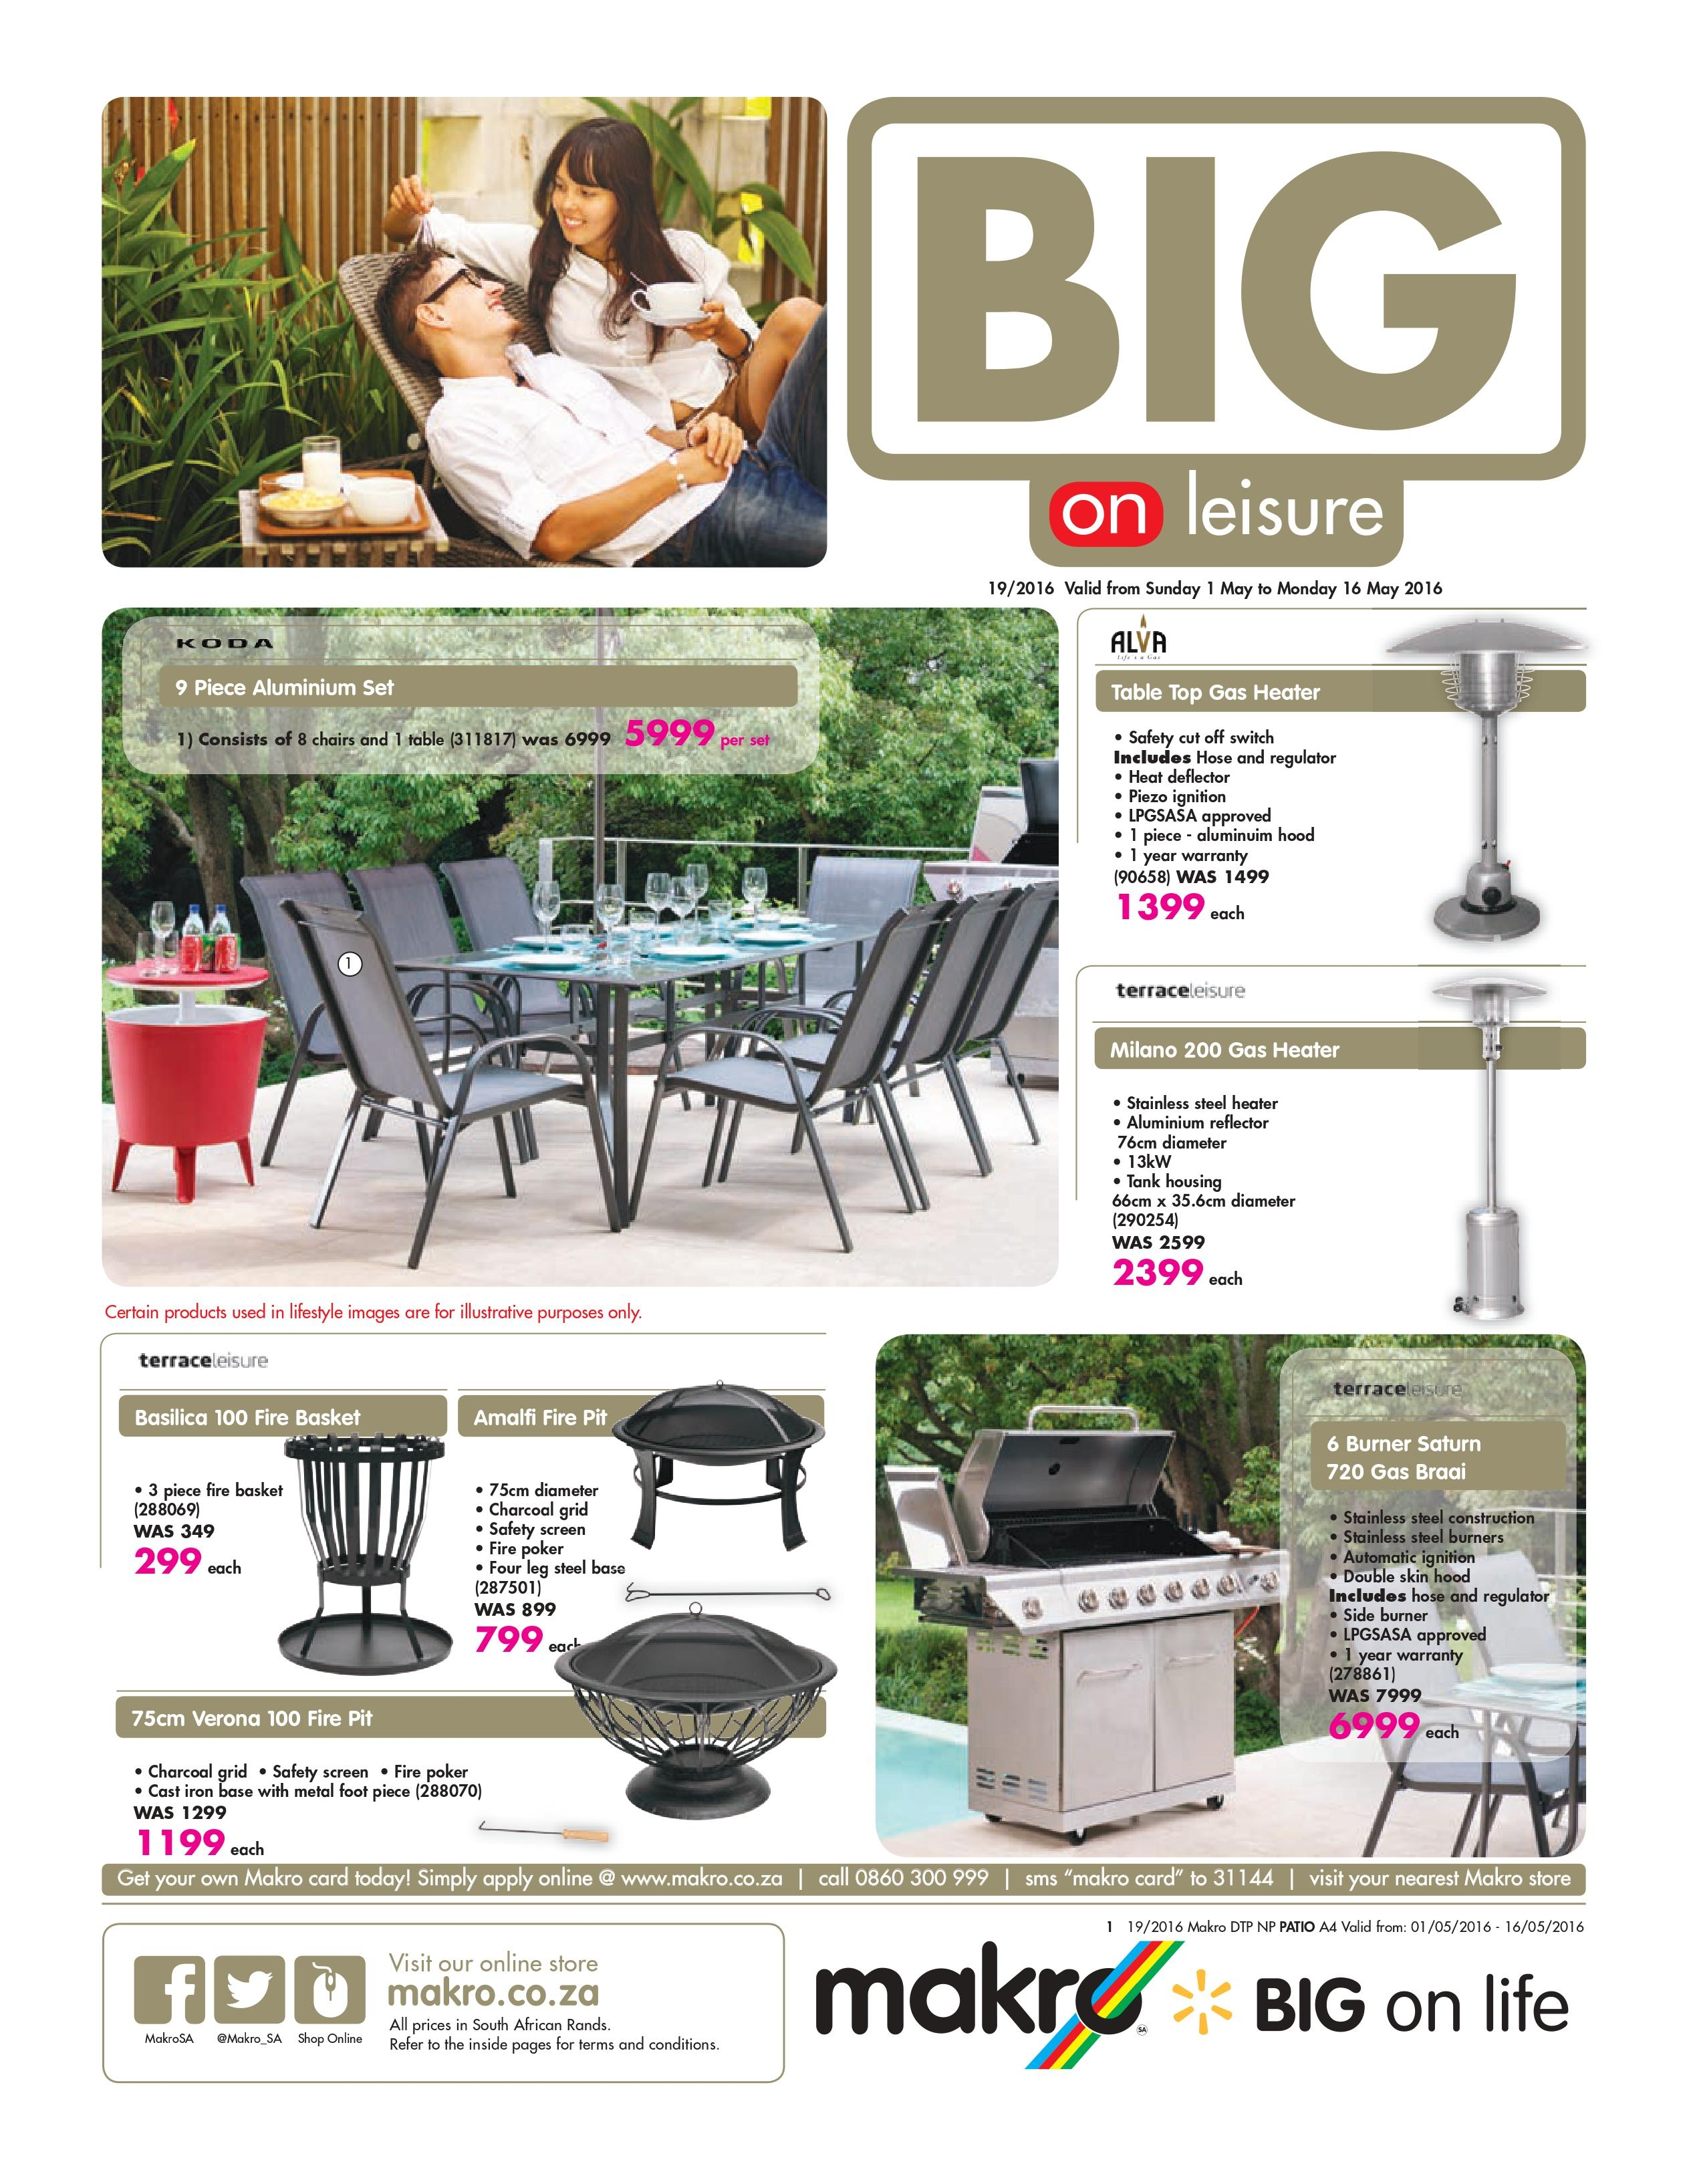 43 Patio Catalog Pages From 2015 Patio Catalog 2 Page 03 Sneade039 Layjao